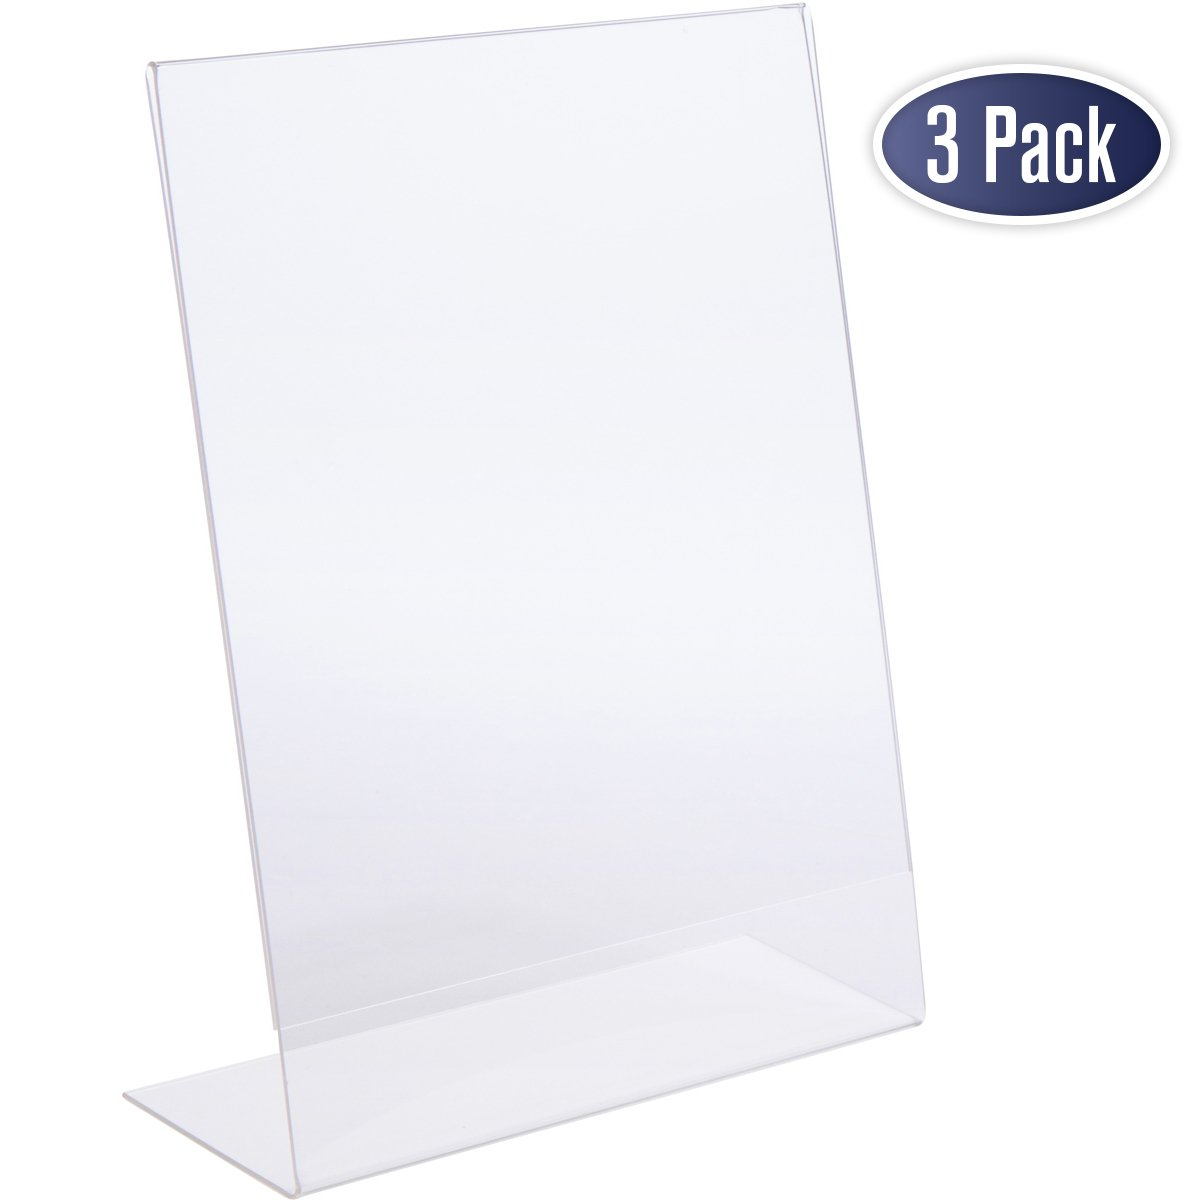 Fashion Style 2 Units Prexiglass Magnet Acrylic Frame Desk Sign Menu Price Tag Display Label Holders Advertising Poster Photo Picture Frame Pure White And Translucent Office & School Supplies